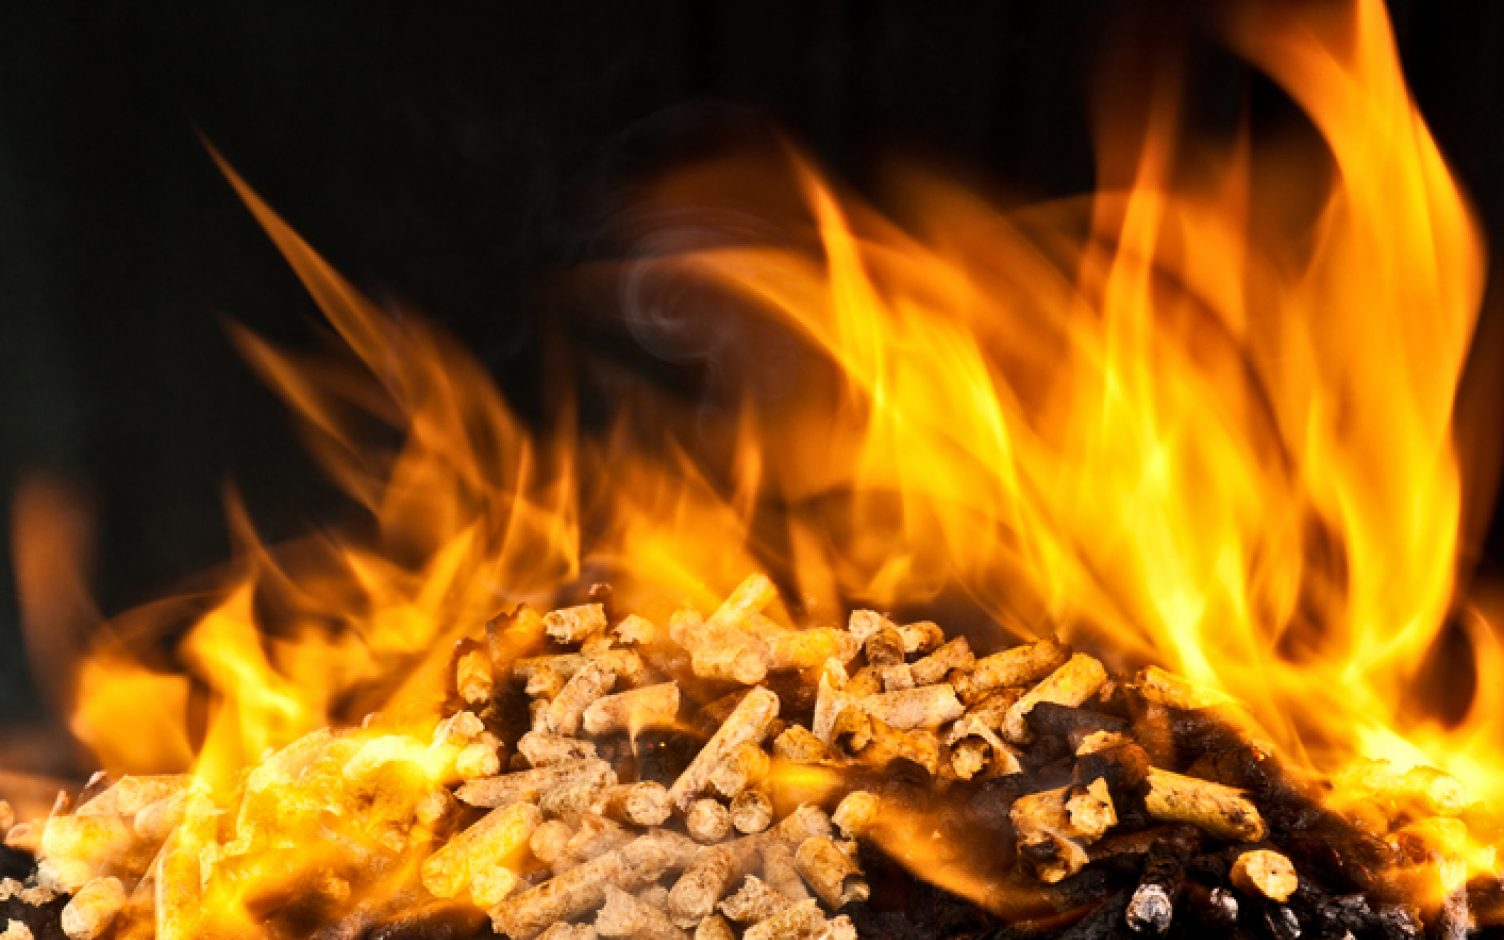 Non-domestic RHI reforms and the implications for Local Authorities